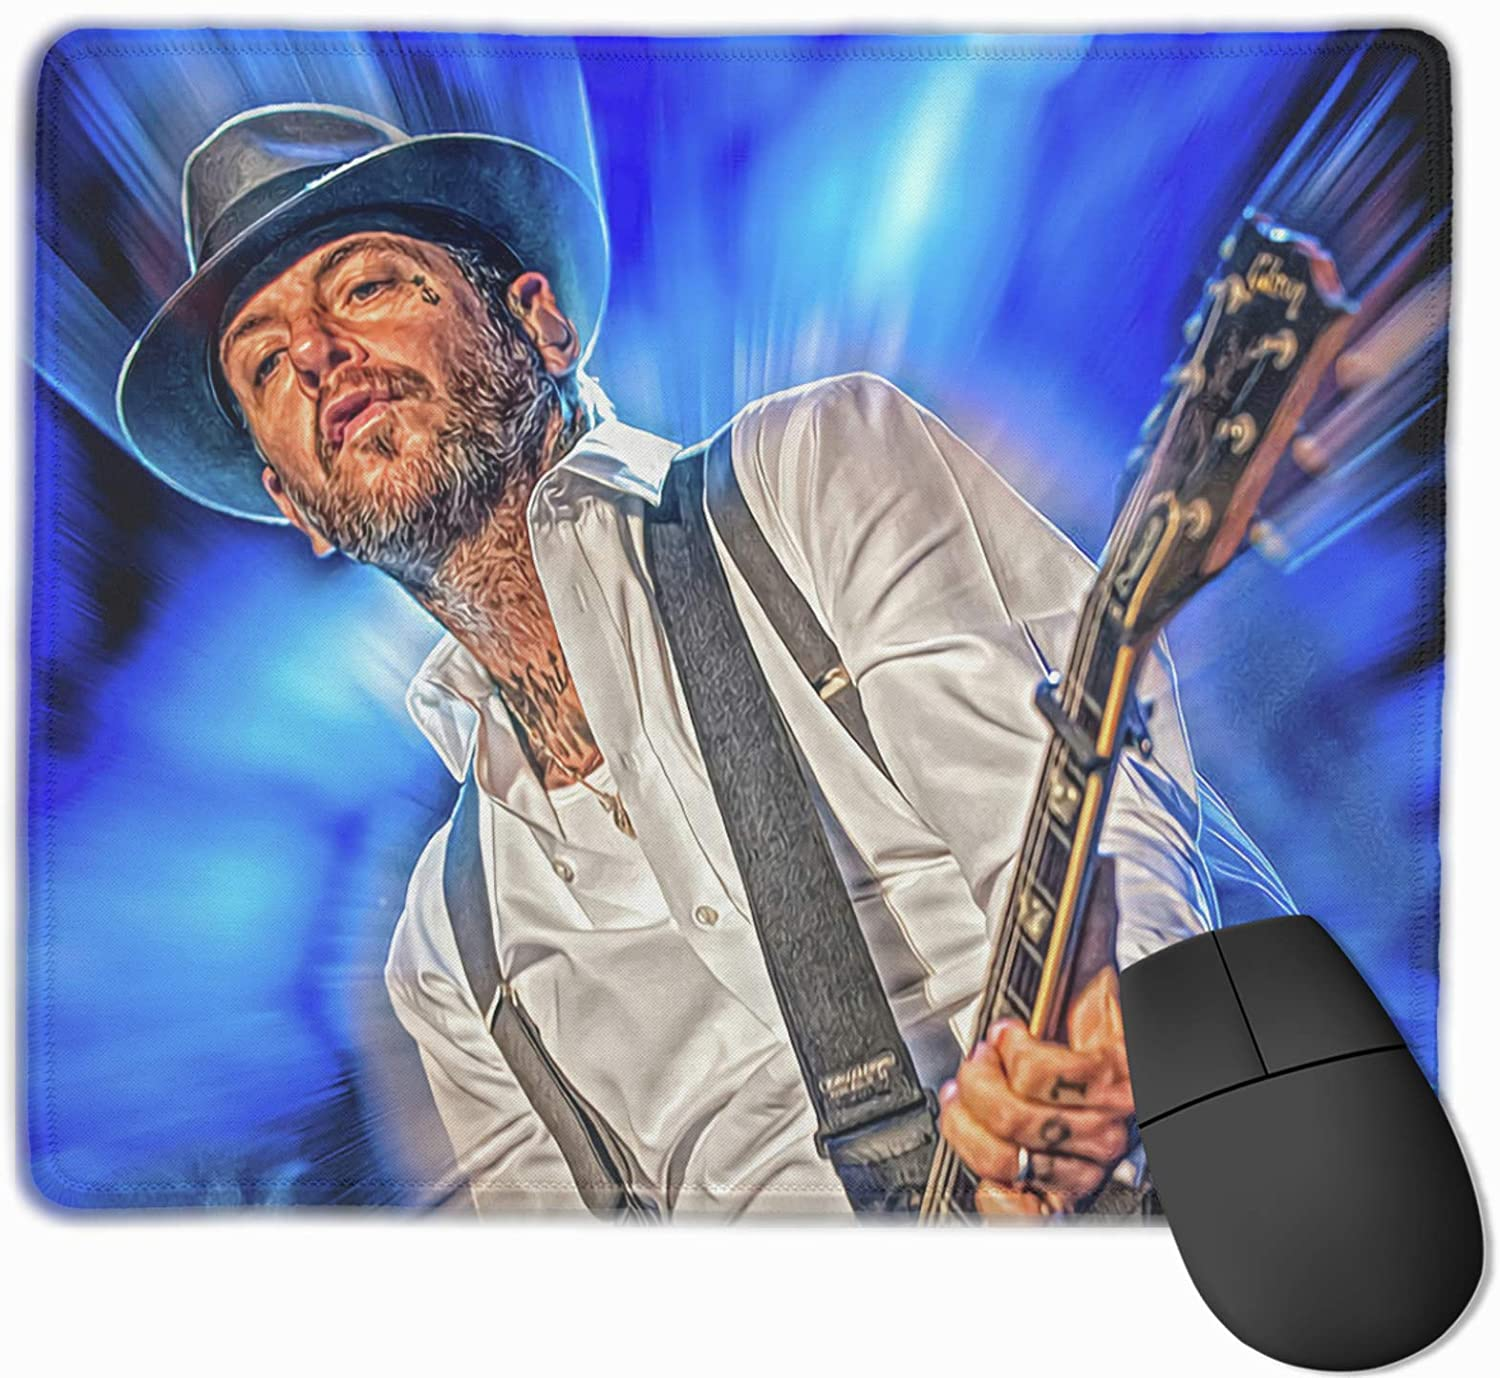 Social Distortion Precision-Locked Mouse Pad 9.8x11.8in, Durable Rectangular Mouse Pad with Non-Slip Rubber Base, Suitable for Laptops, Computers and Pcs